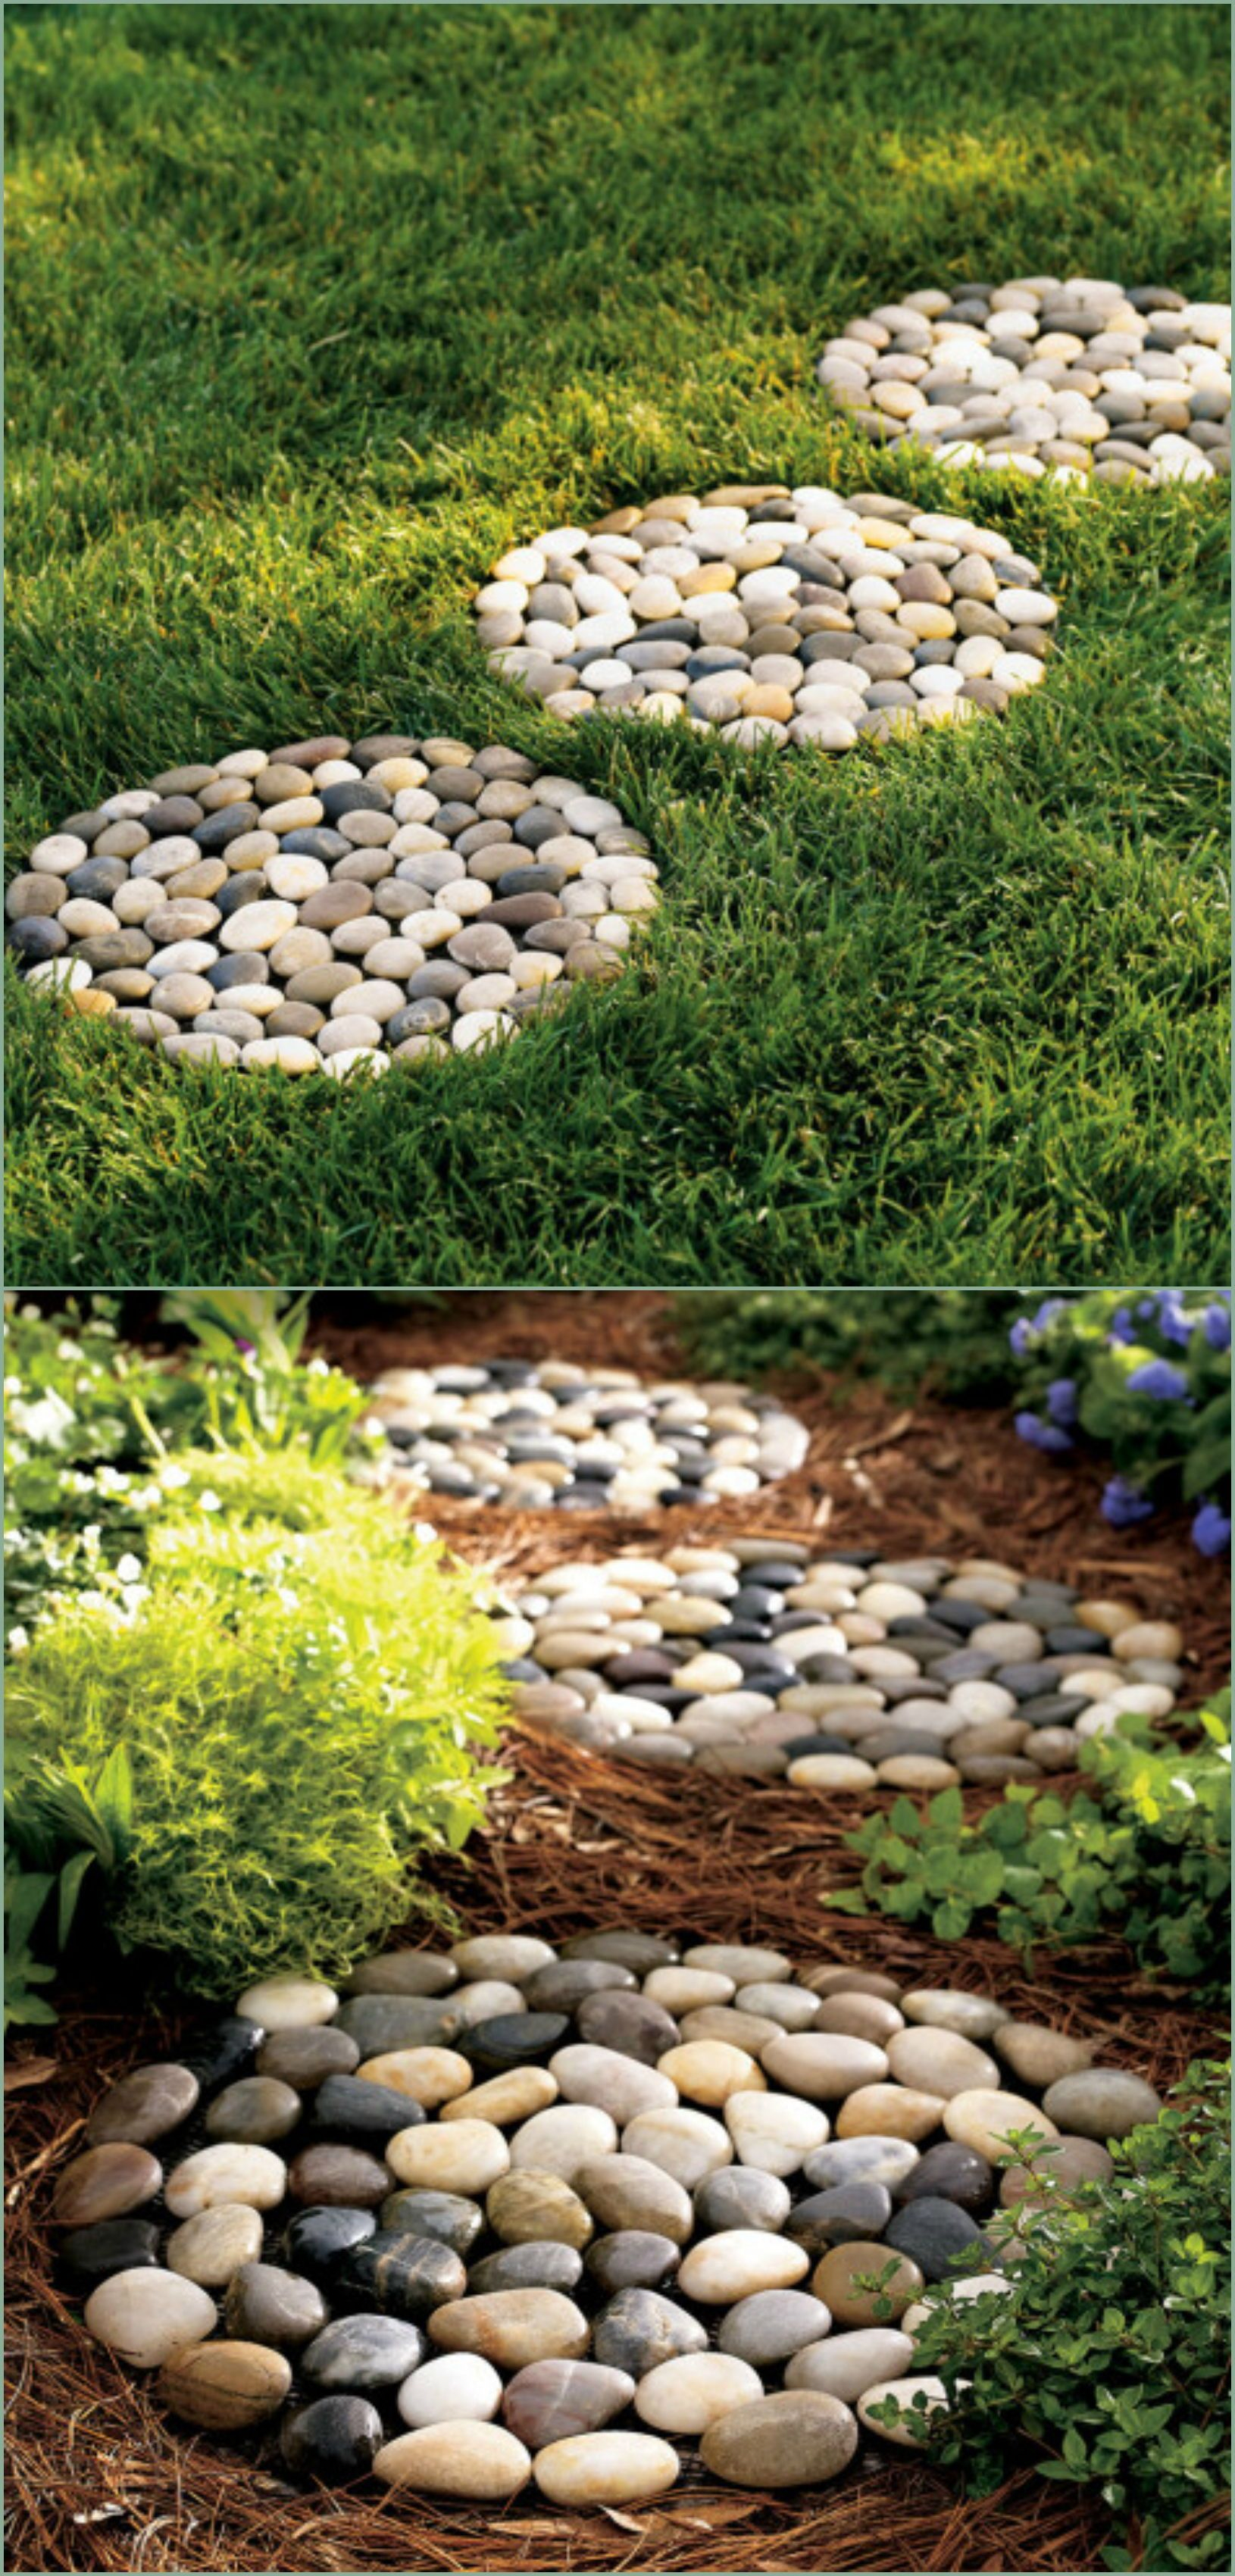 Weve Rounded The Corners Of Our Popular River Stone Rectangular